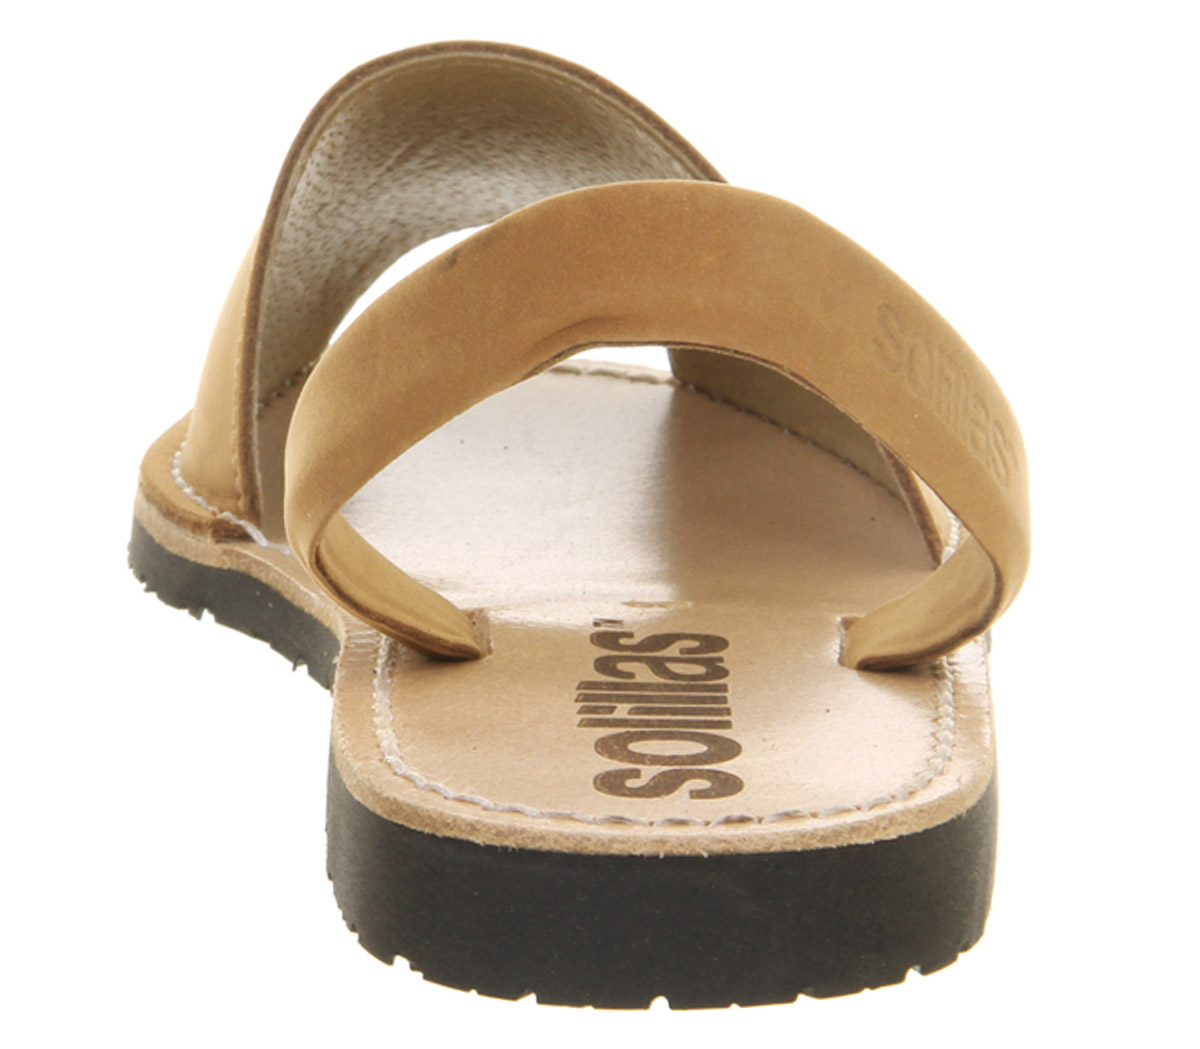 Womens-Solillas-Solillas-Sandals-Tan-Leather-Sandals thumbnail 9